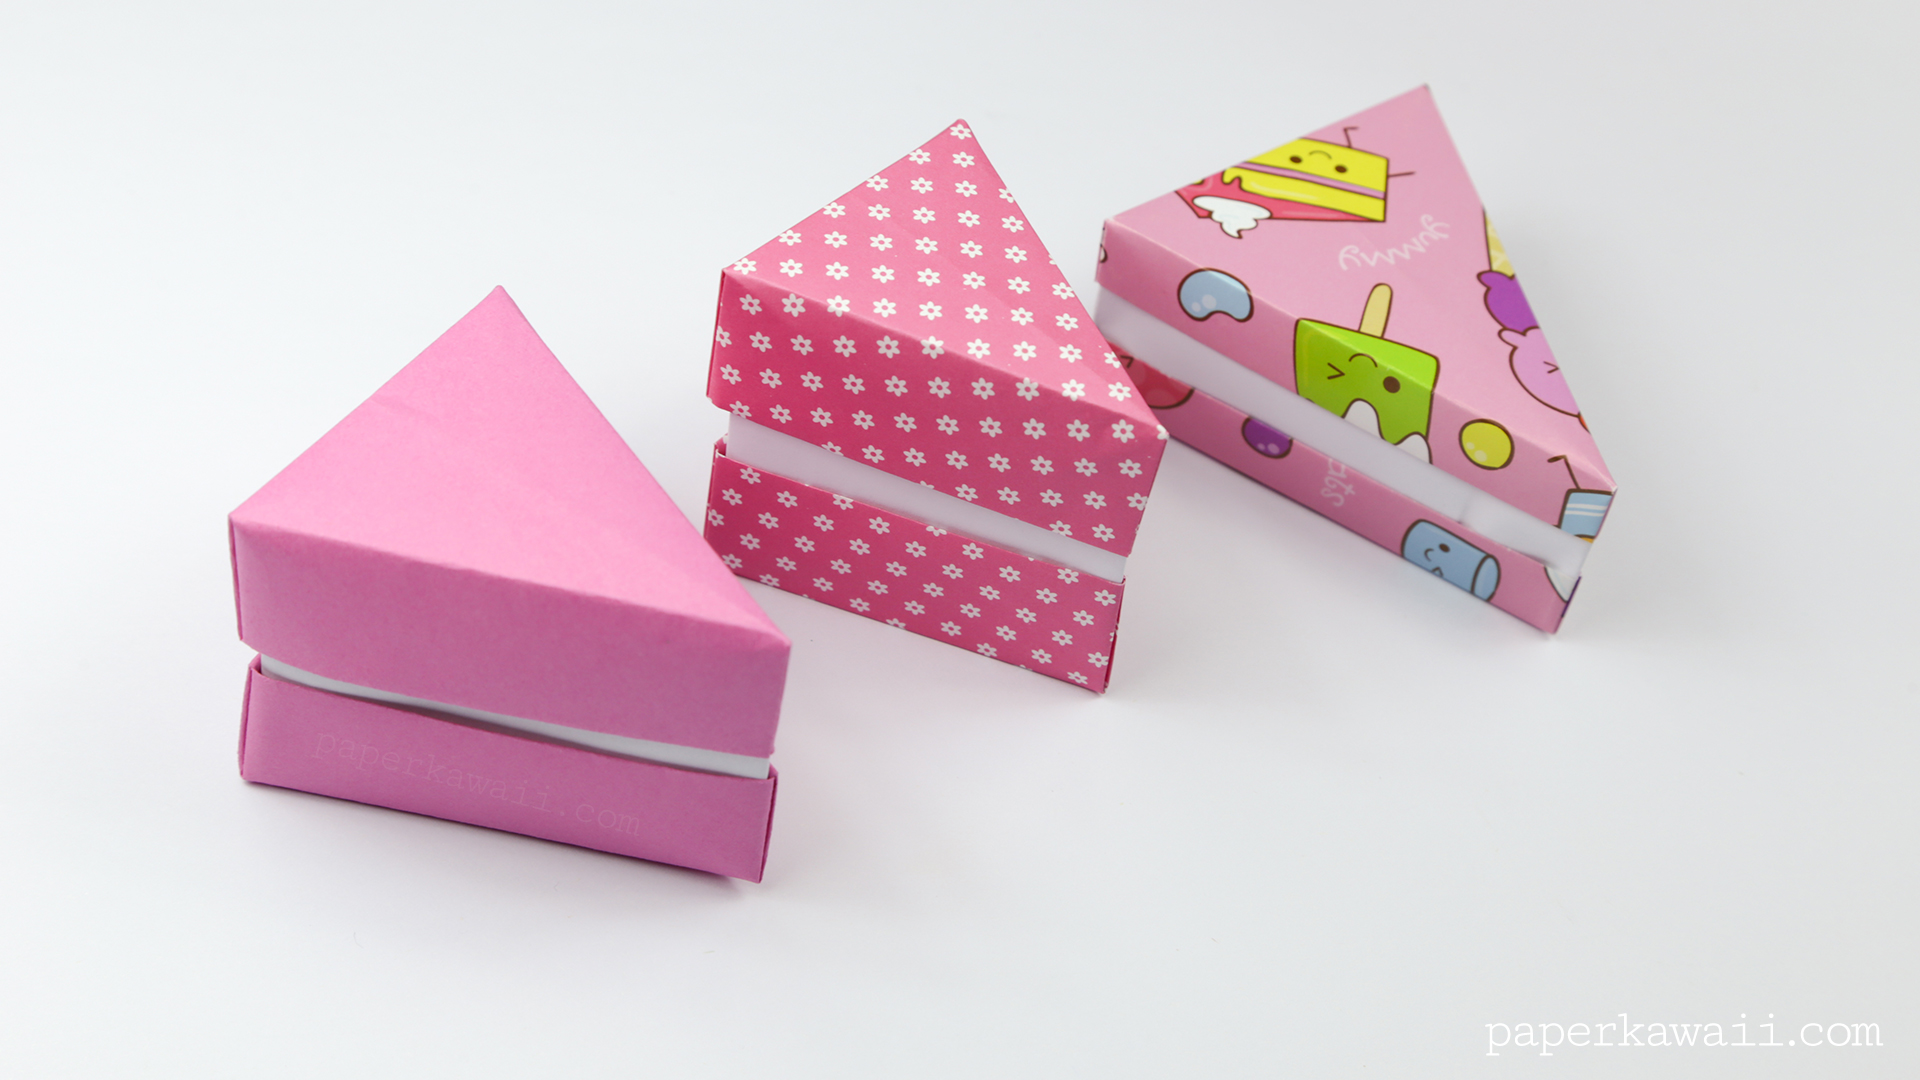 Origami cake slice box instructions paper kawaii the kawaii ice cream and cakes paper is just wrapping paper i found and cut to square jeuxipadfo Choice Image